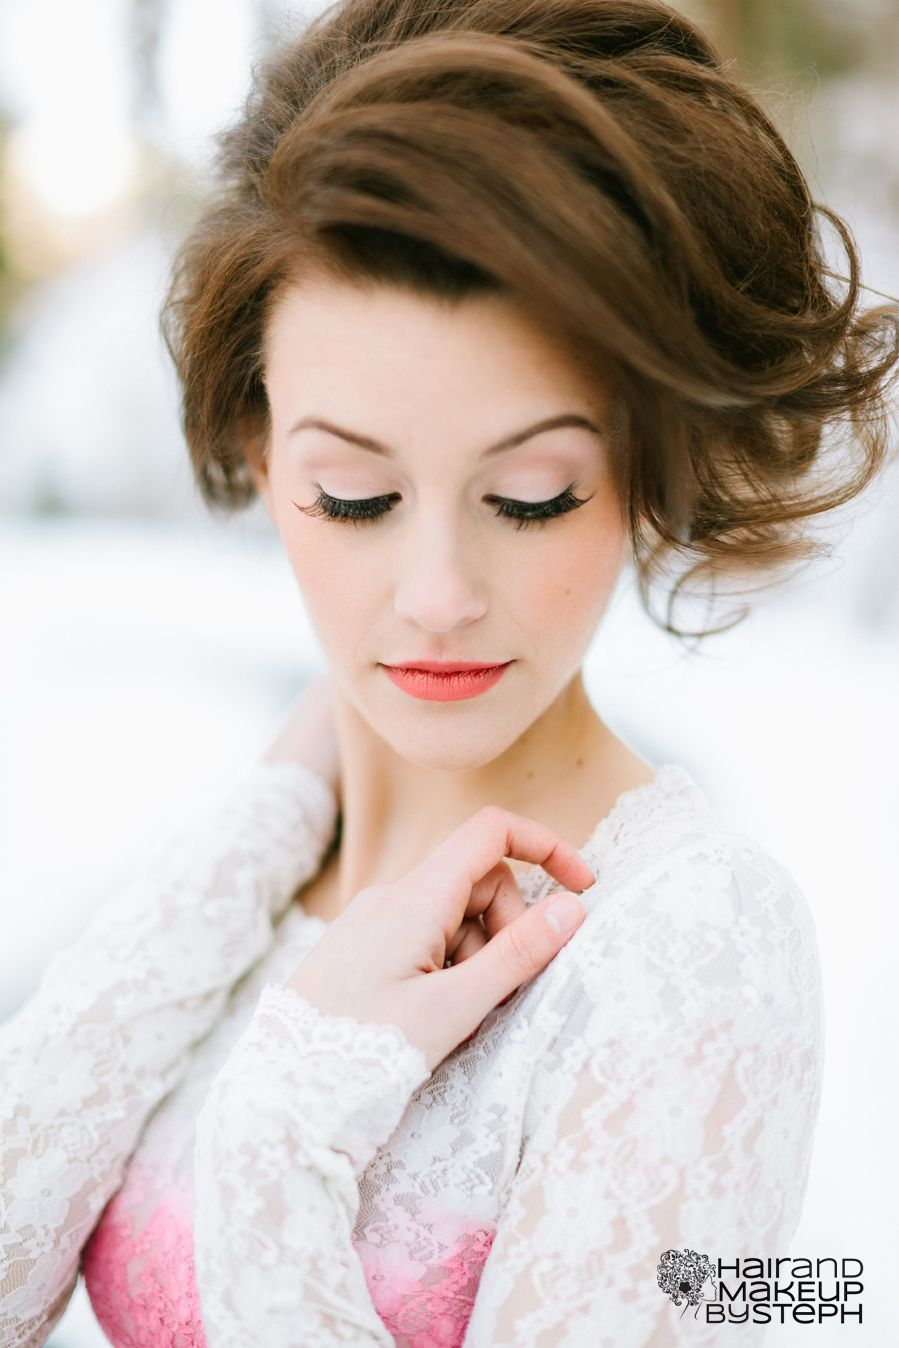 Tips for doing makeup for photographs